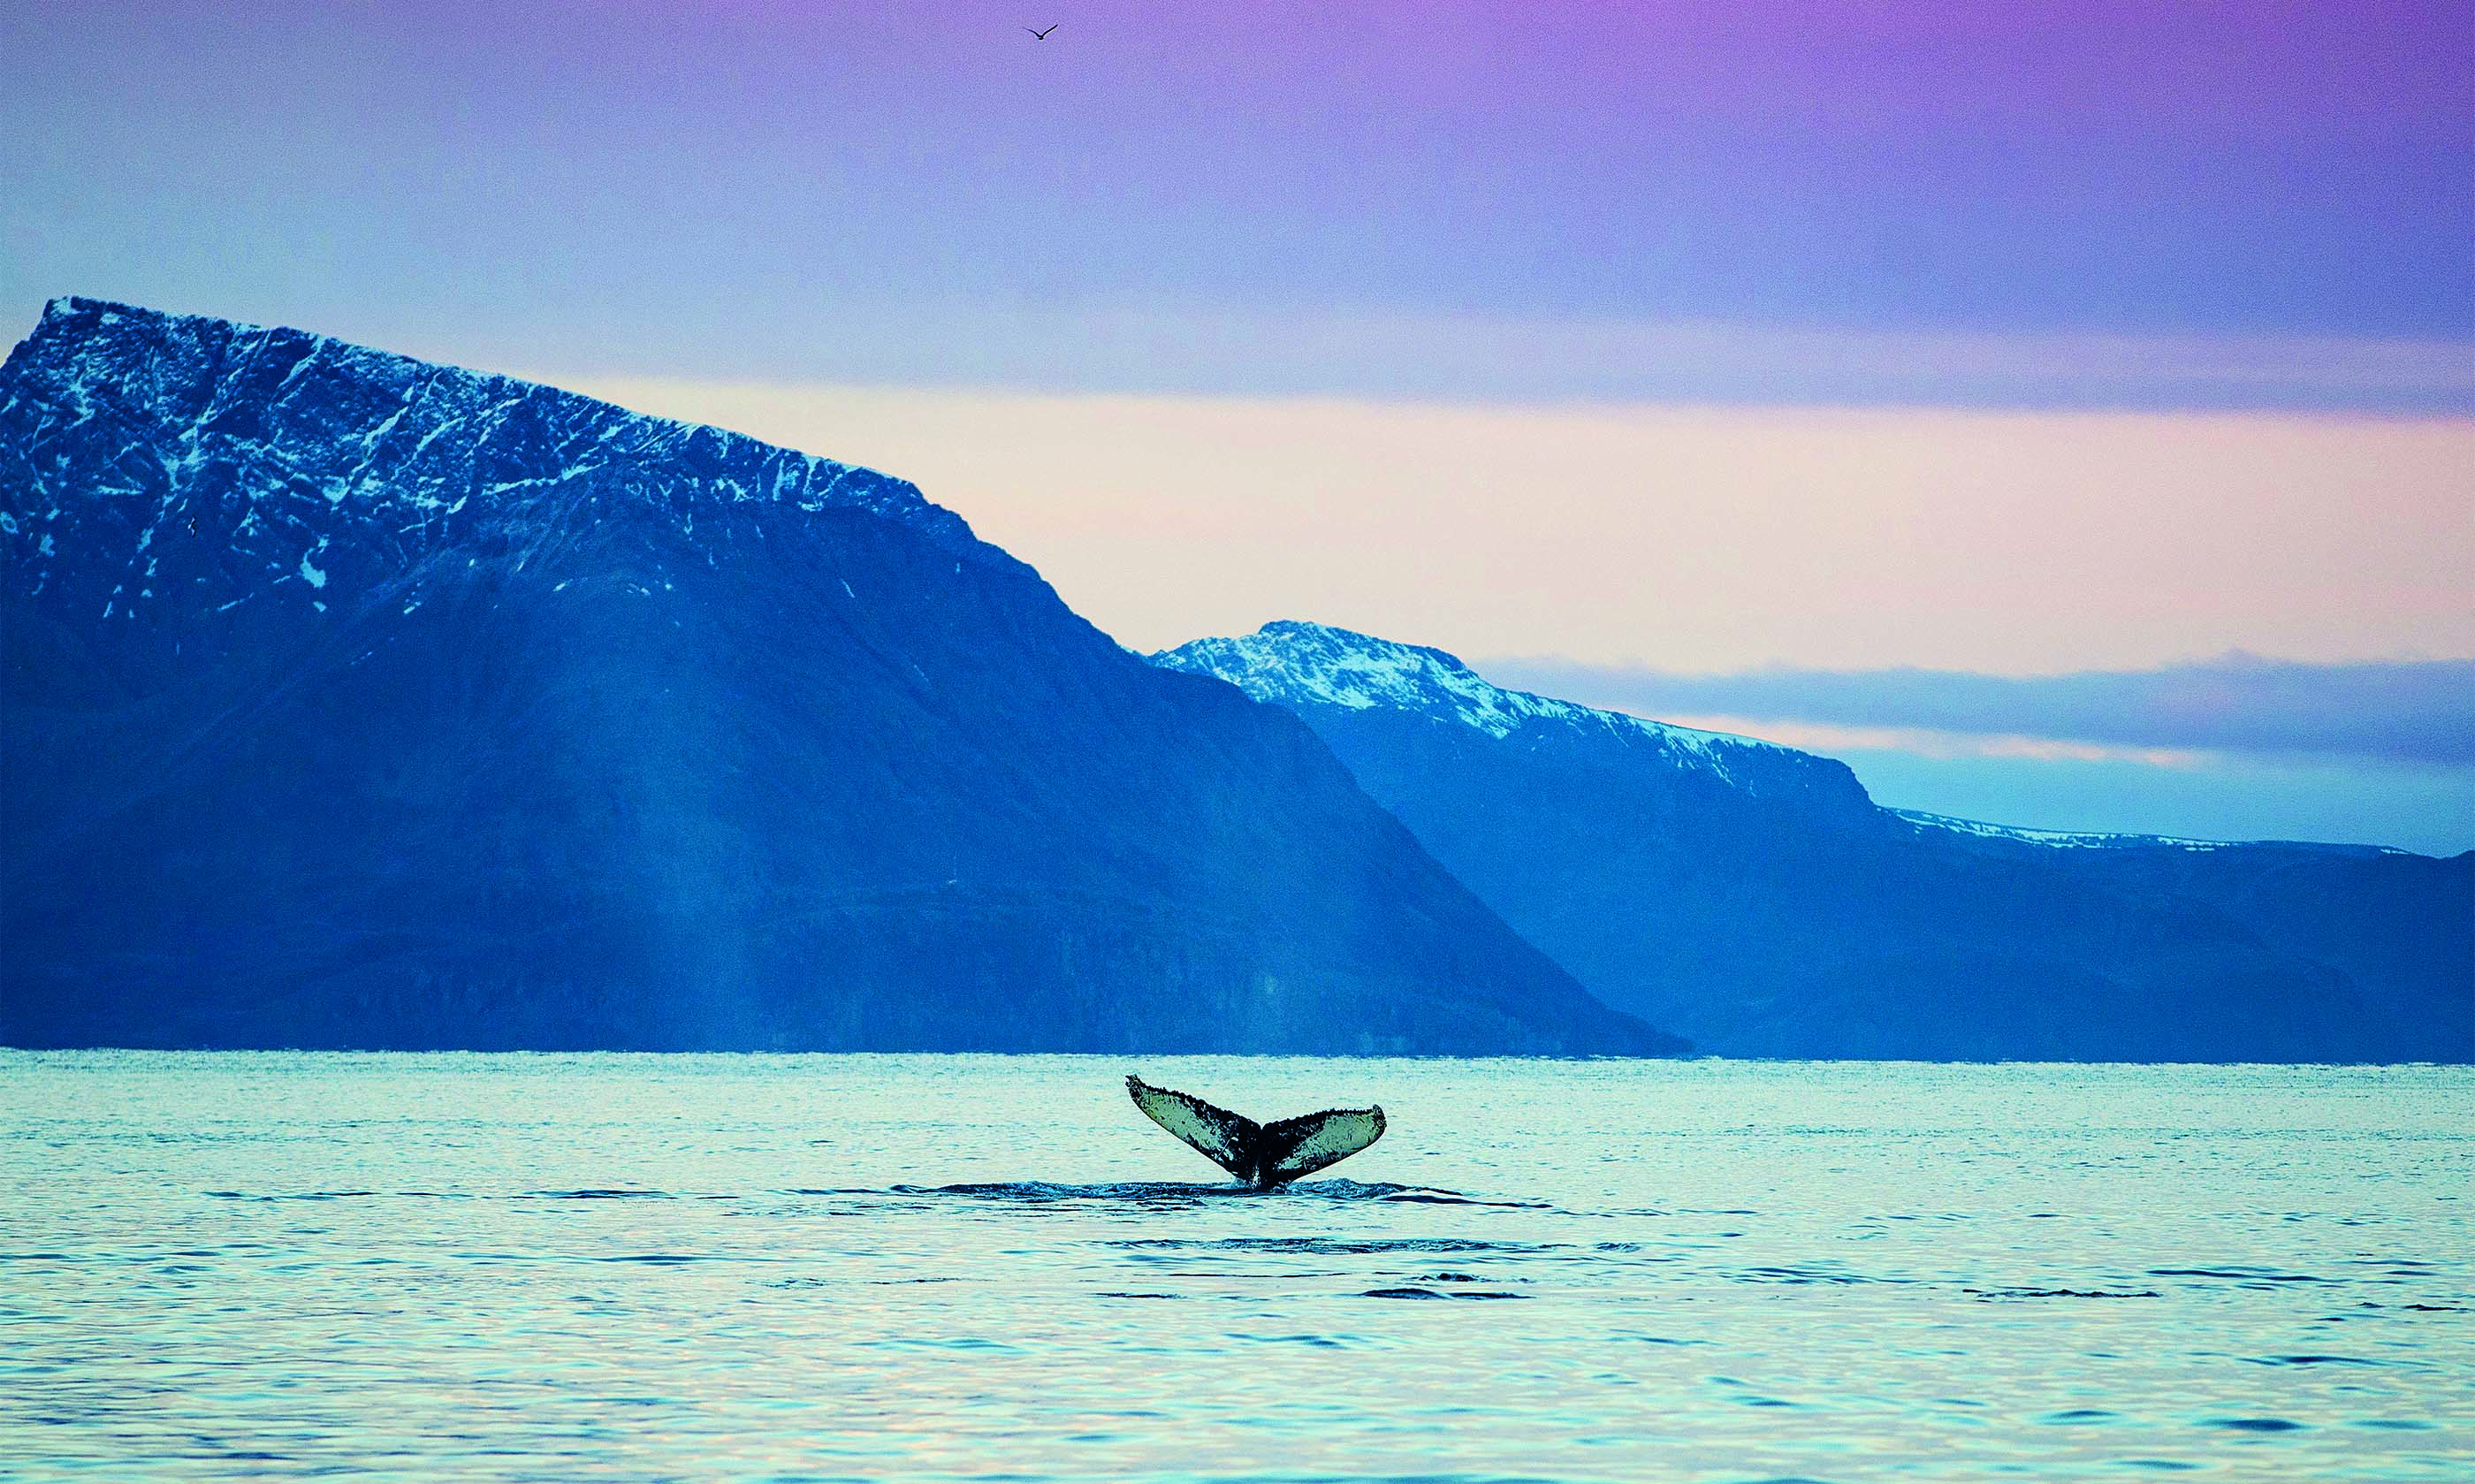 whalesafari nordekspedisjon 4 - Top 15 whale watching trips